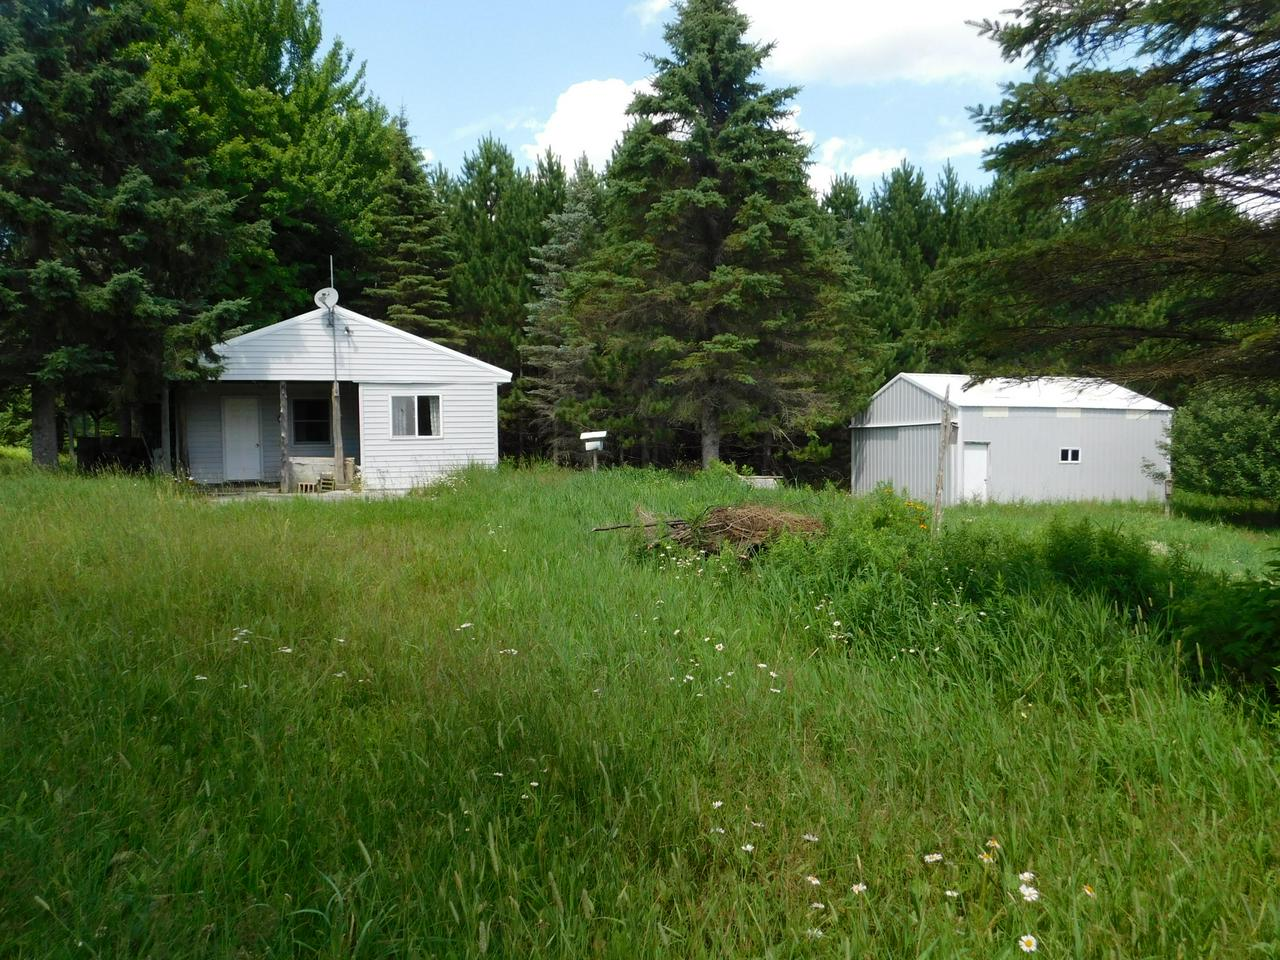 Hard to Find 350 Acres of Contiguous Hunting w/Cabin & Pole Building! Has sand point well, conv. septic system, electricity, approx. 10 ac. Food Plots, High & low land, Thick Deer Holding Habitat  & creeks traversing through property & agriculture fields in the immediate area means food, water & cover for Deer, Bear & Wildlife. Great trail system in place for accessing parcel along w/expired railroad tracks. Property adjoins Nicolet Forest & has great ATV/Snowmobile trails nearby. Recreation Paradise! Property not zoned. Appliances, grain drill & quack digger negotiable. Seller willing to divide parcels to sell 120 ac w/cabin & shed for $195,600 and 230 acres land only for $299,900. Call Today!